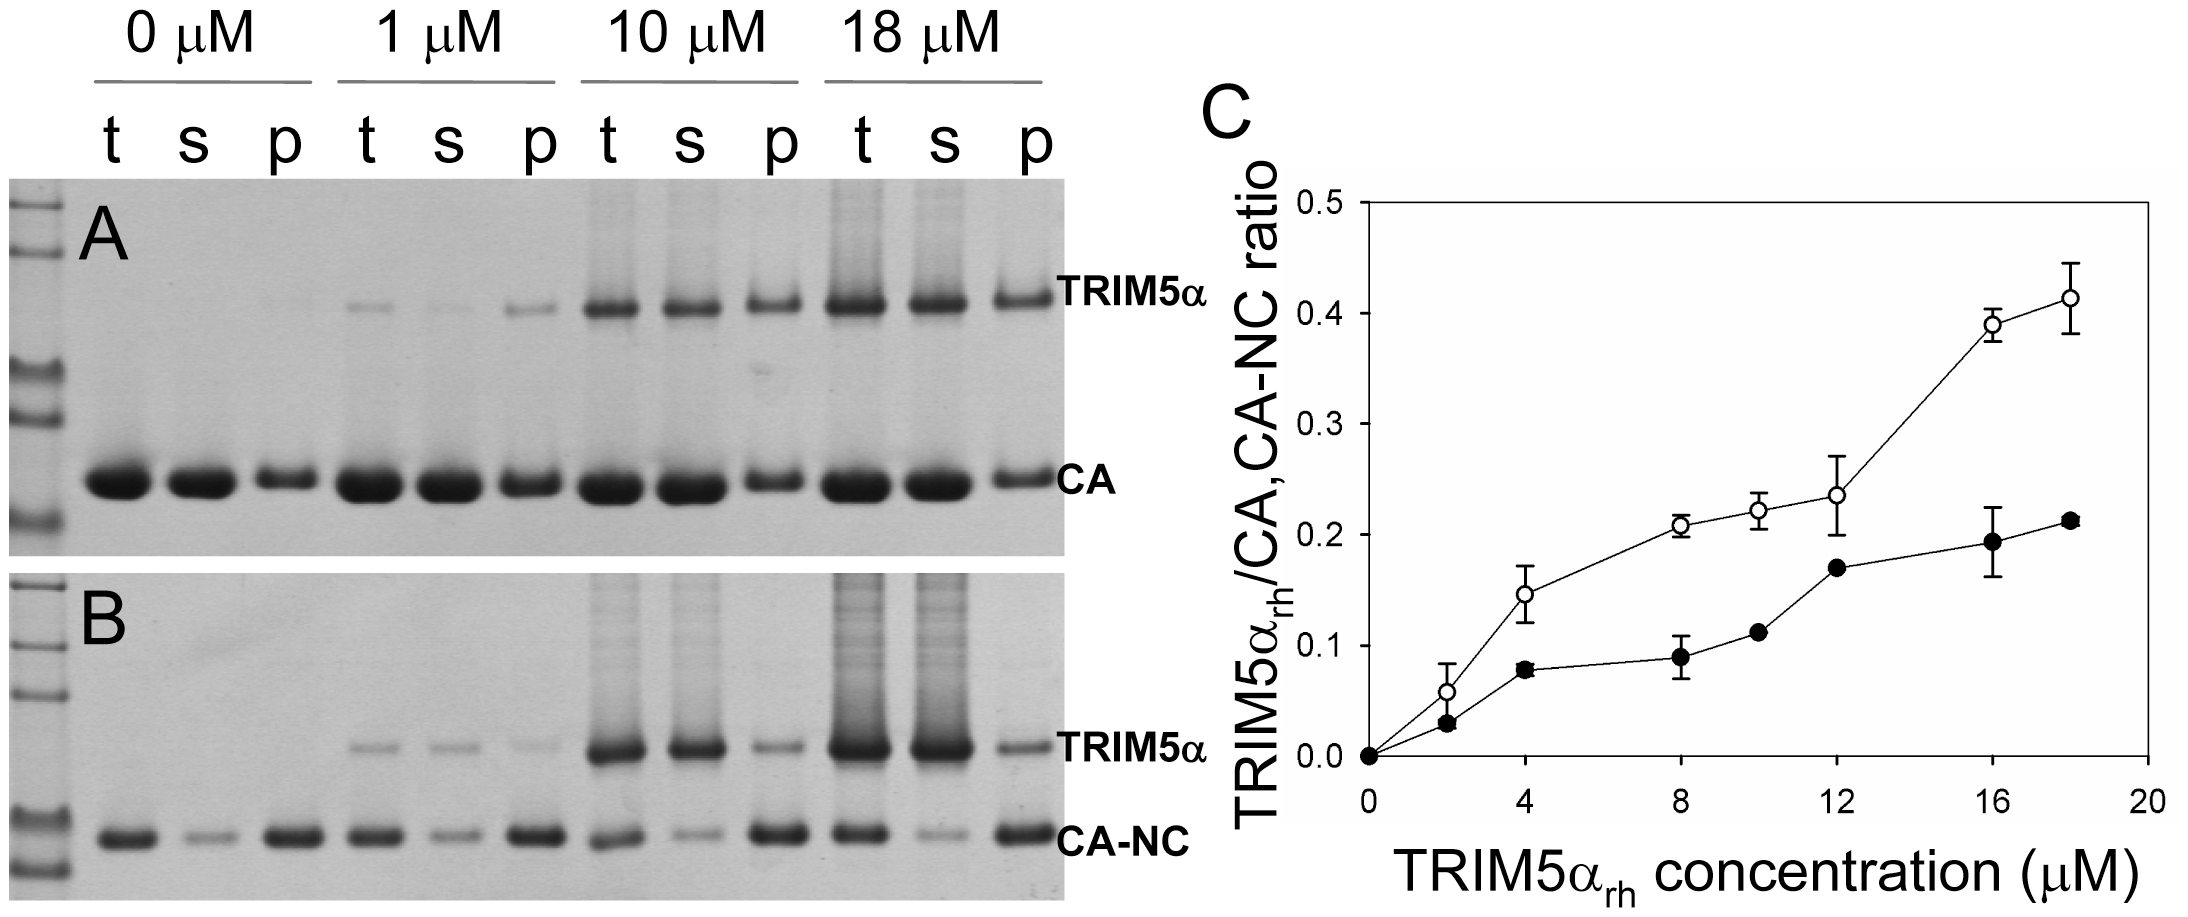 Analysis of TRIM5α<sub>rh</sub> CC-SPRY binding to the assembly of wild-type CA and CA-NC tubes.